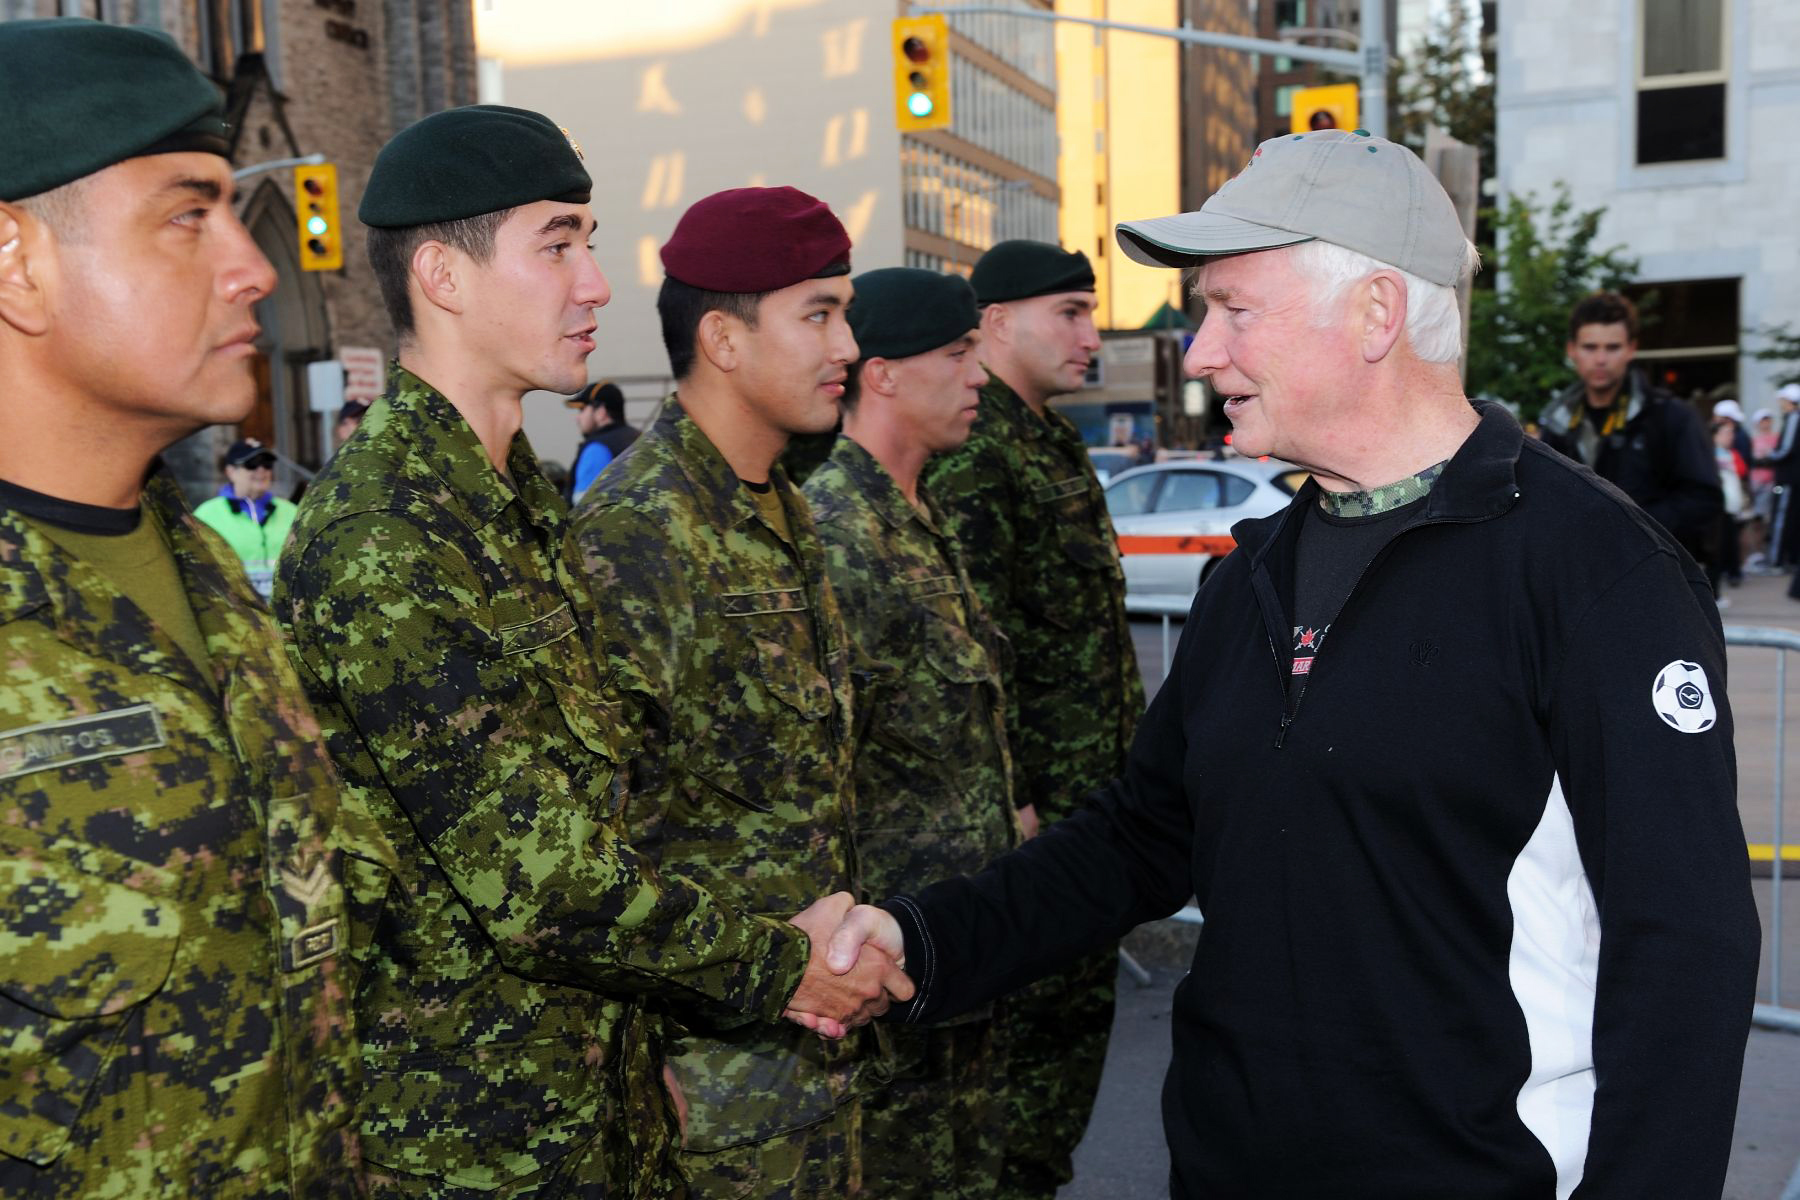 Upon his arrival, His Excellency shook hands with Canadian Forces members. As commander-in-chief of the Canadian Forces, His Excellency is committed to supporting the troops at home and abroad.